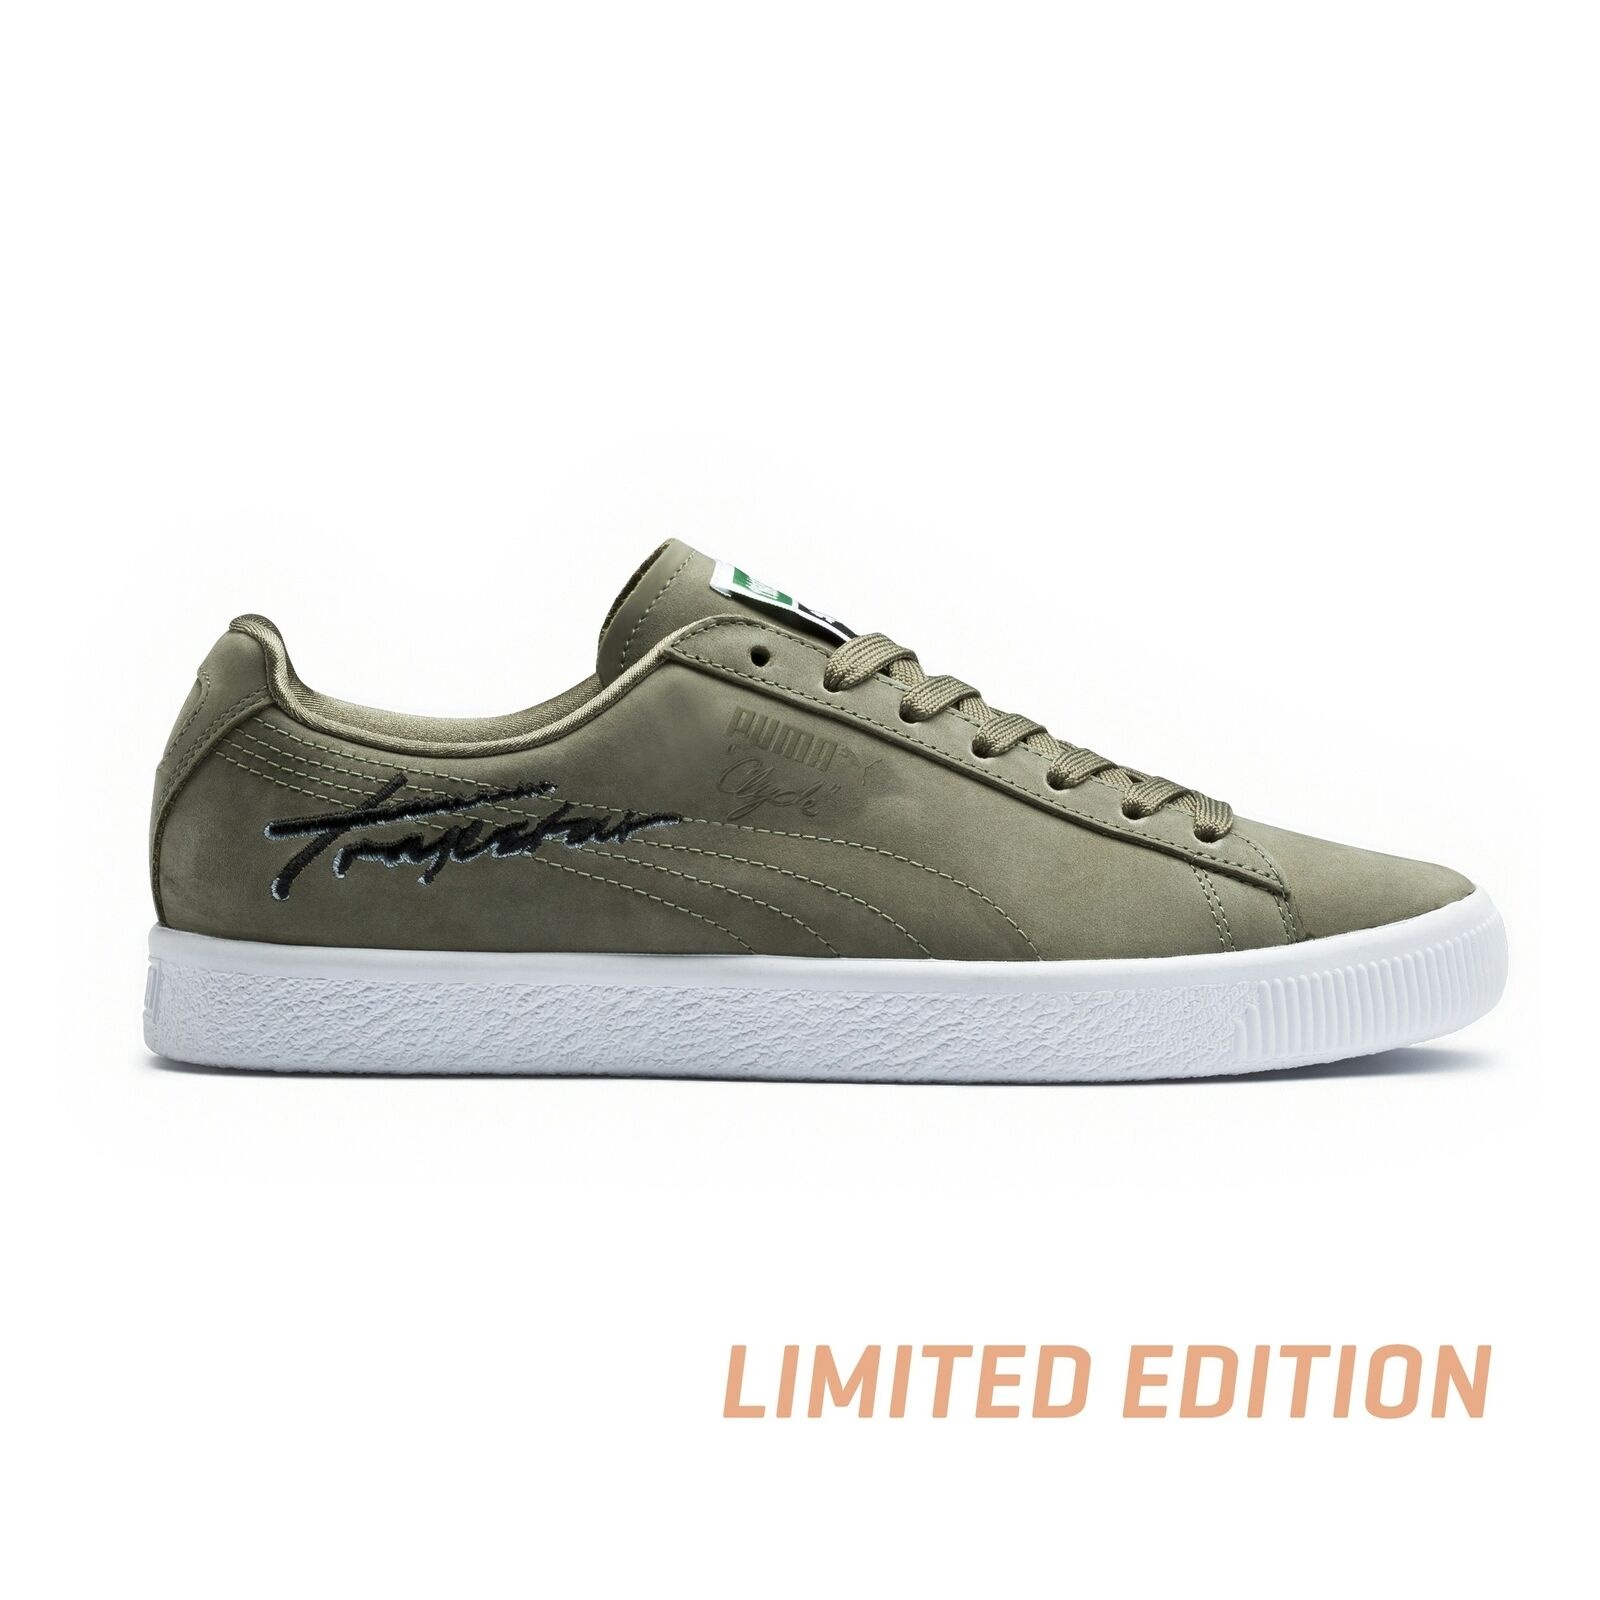 Puma x Trapstar Mens Clyde Bold shoes New Without Box (Burnt olive, 11)